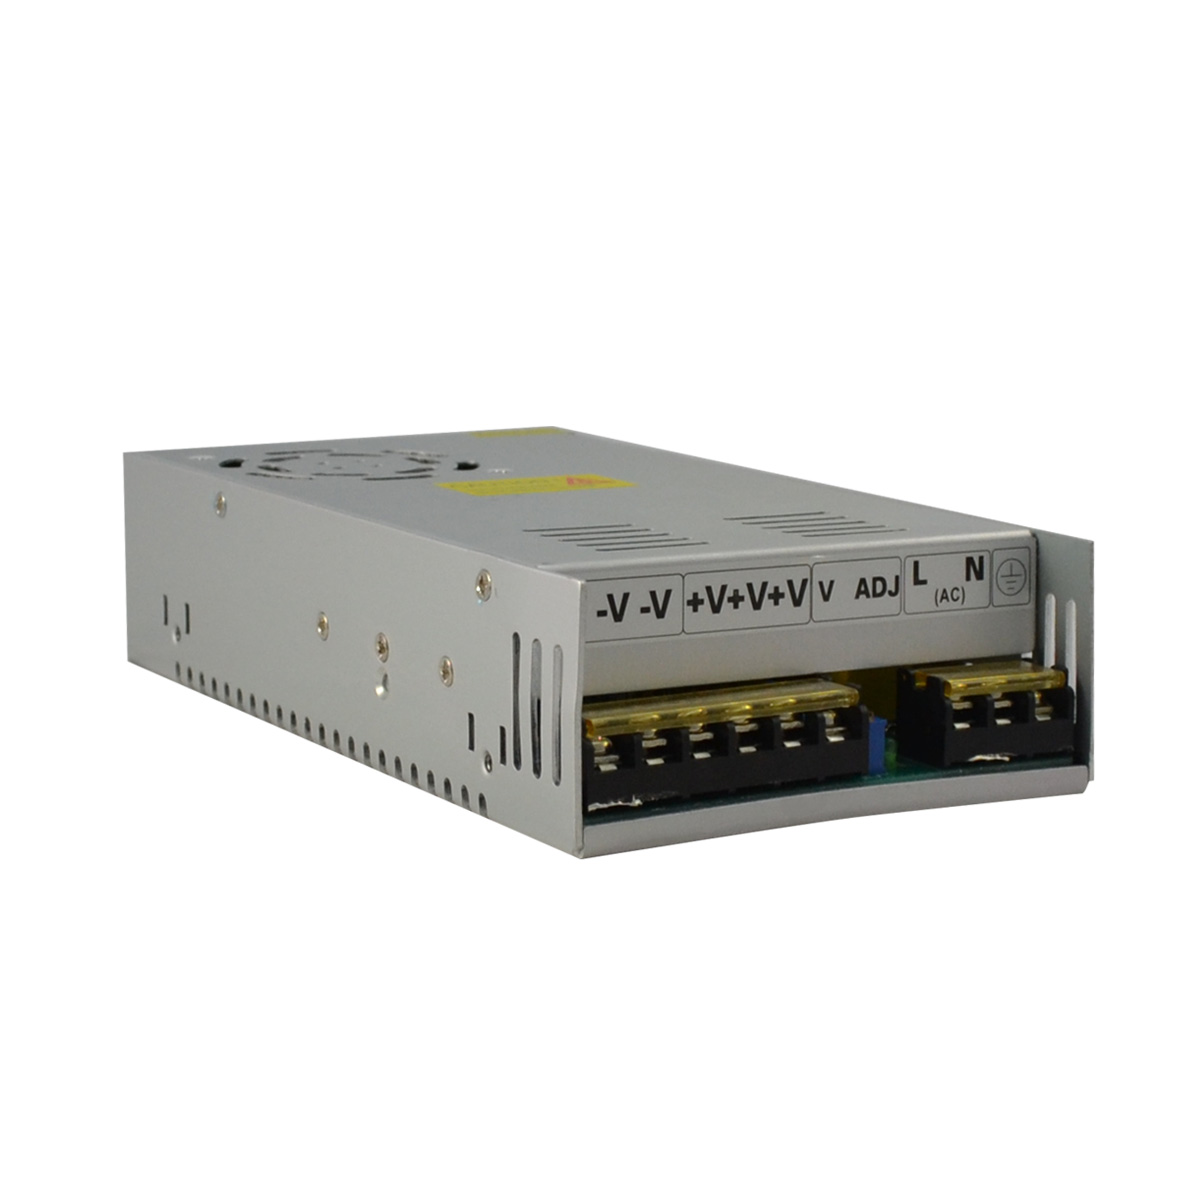 Replacement for power supply centralized 12vDC 30A 18 channels